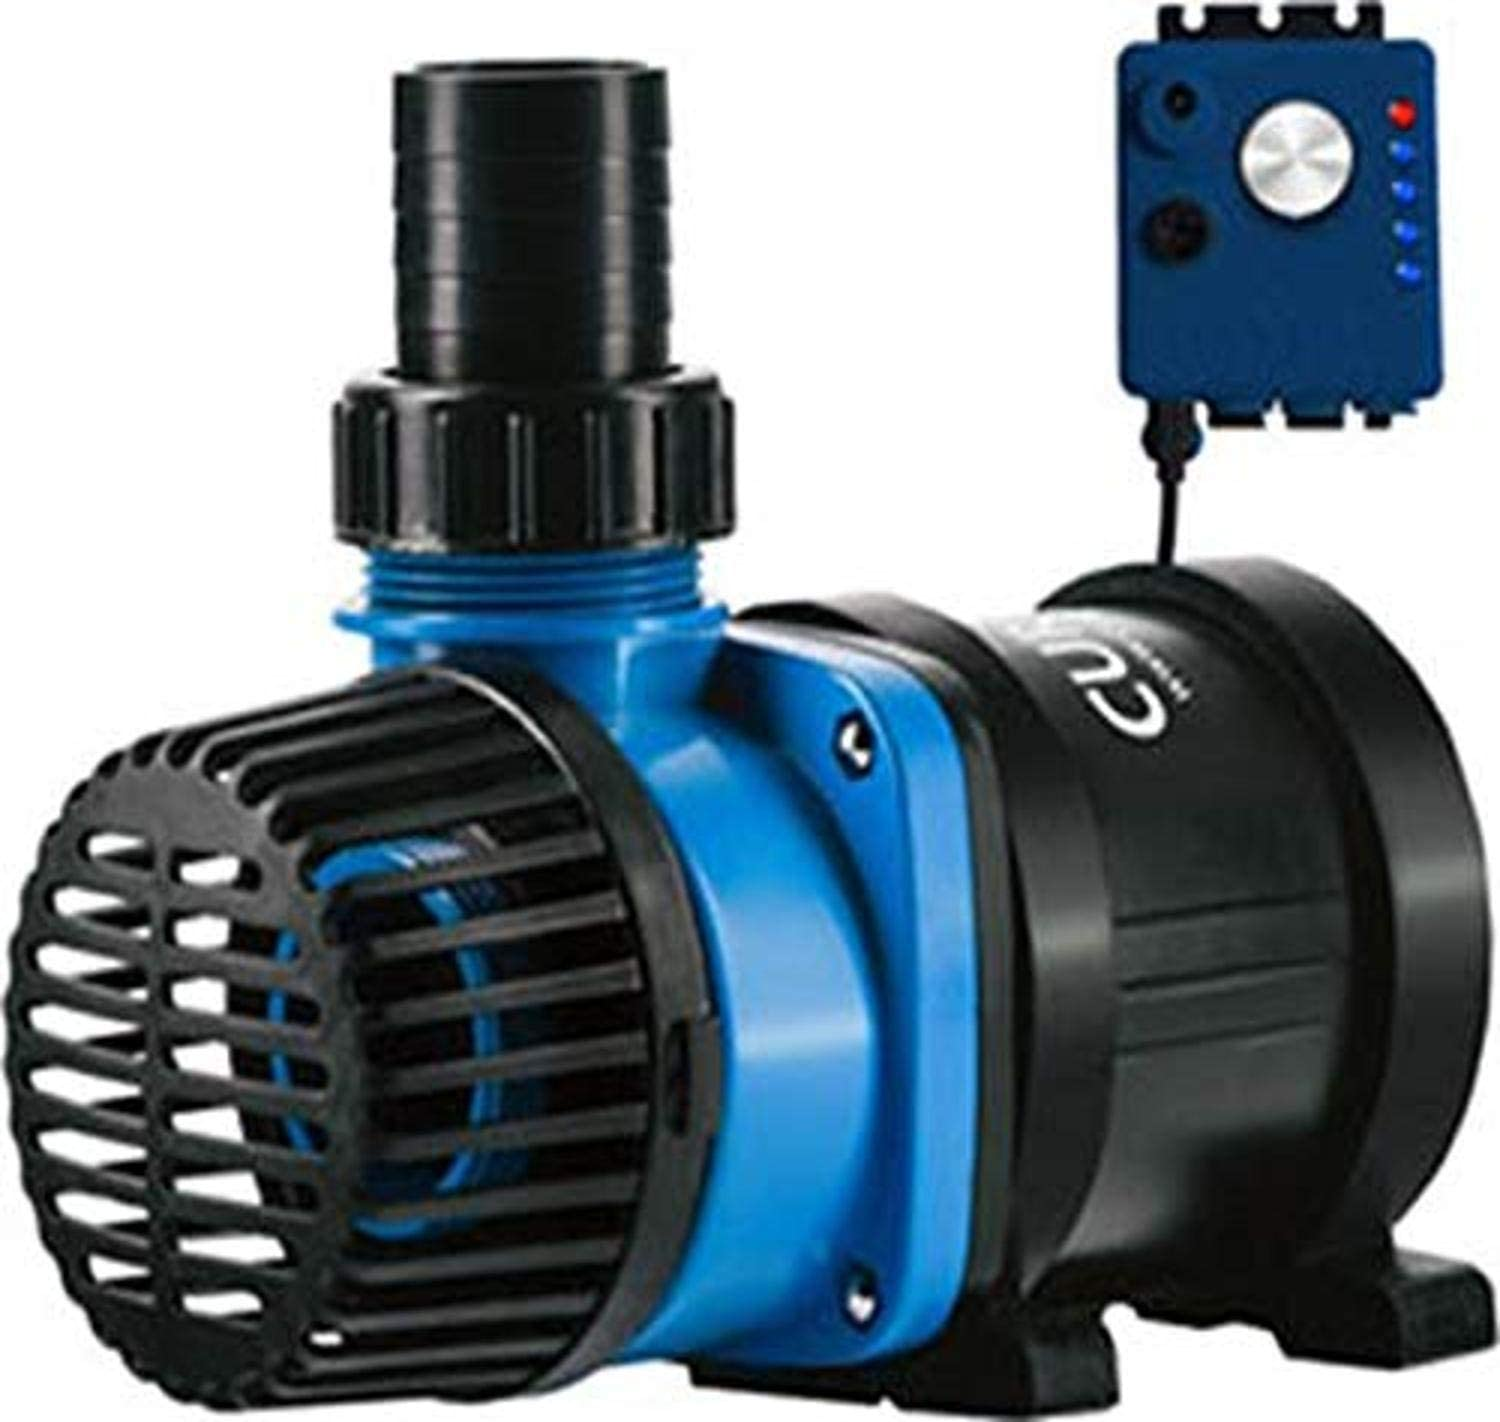 Current USA eFlux DC Flow Pump with Flow Control |1050 GPH, 1900 GPH & 3170 GPH Flow Ranges Available | Ultra Quiet, Submersible or External Installation | Safe for Saltwater & Freshwater Systems